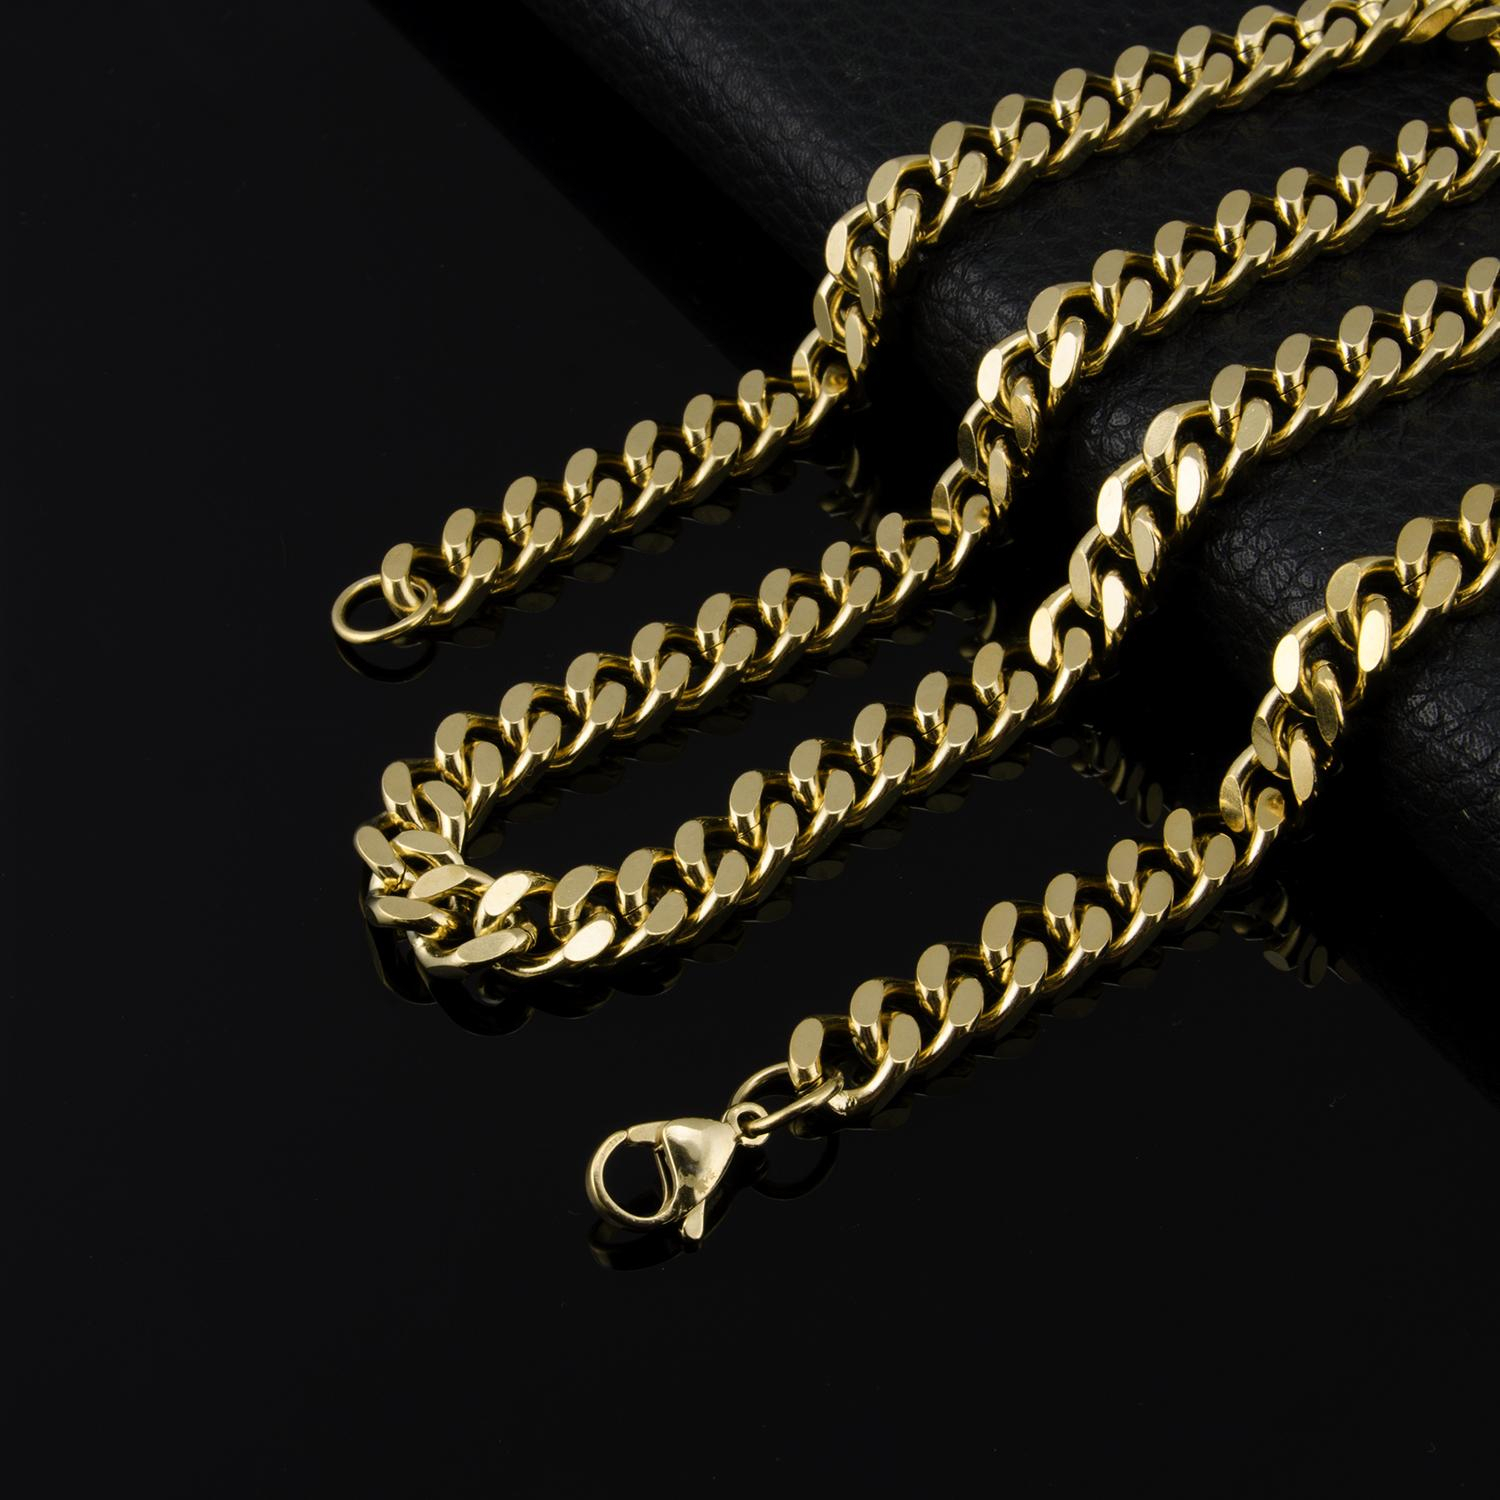 Usenset 10Mm/24Inch Mens Chain Womens Round Cut Curb Chain Necklace Gold  Filled Gf Jewelry Party Daily Wear Silver Necklace Throughout 2020 Curb Chain Necklaces (View 25 of 25)